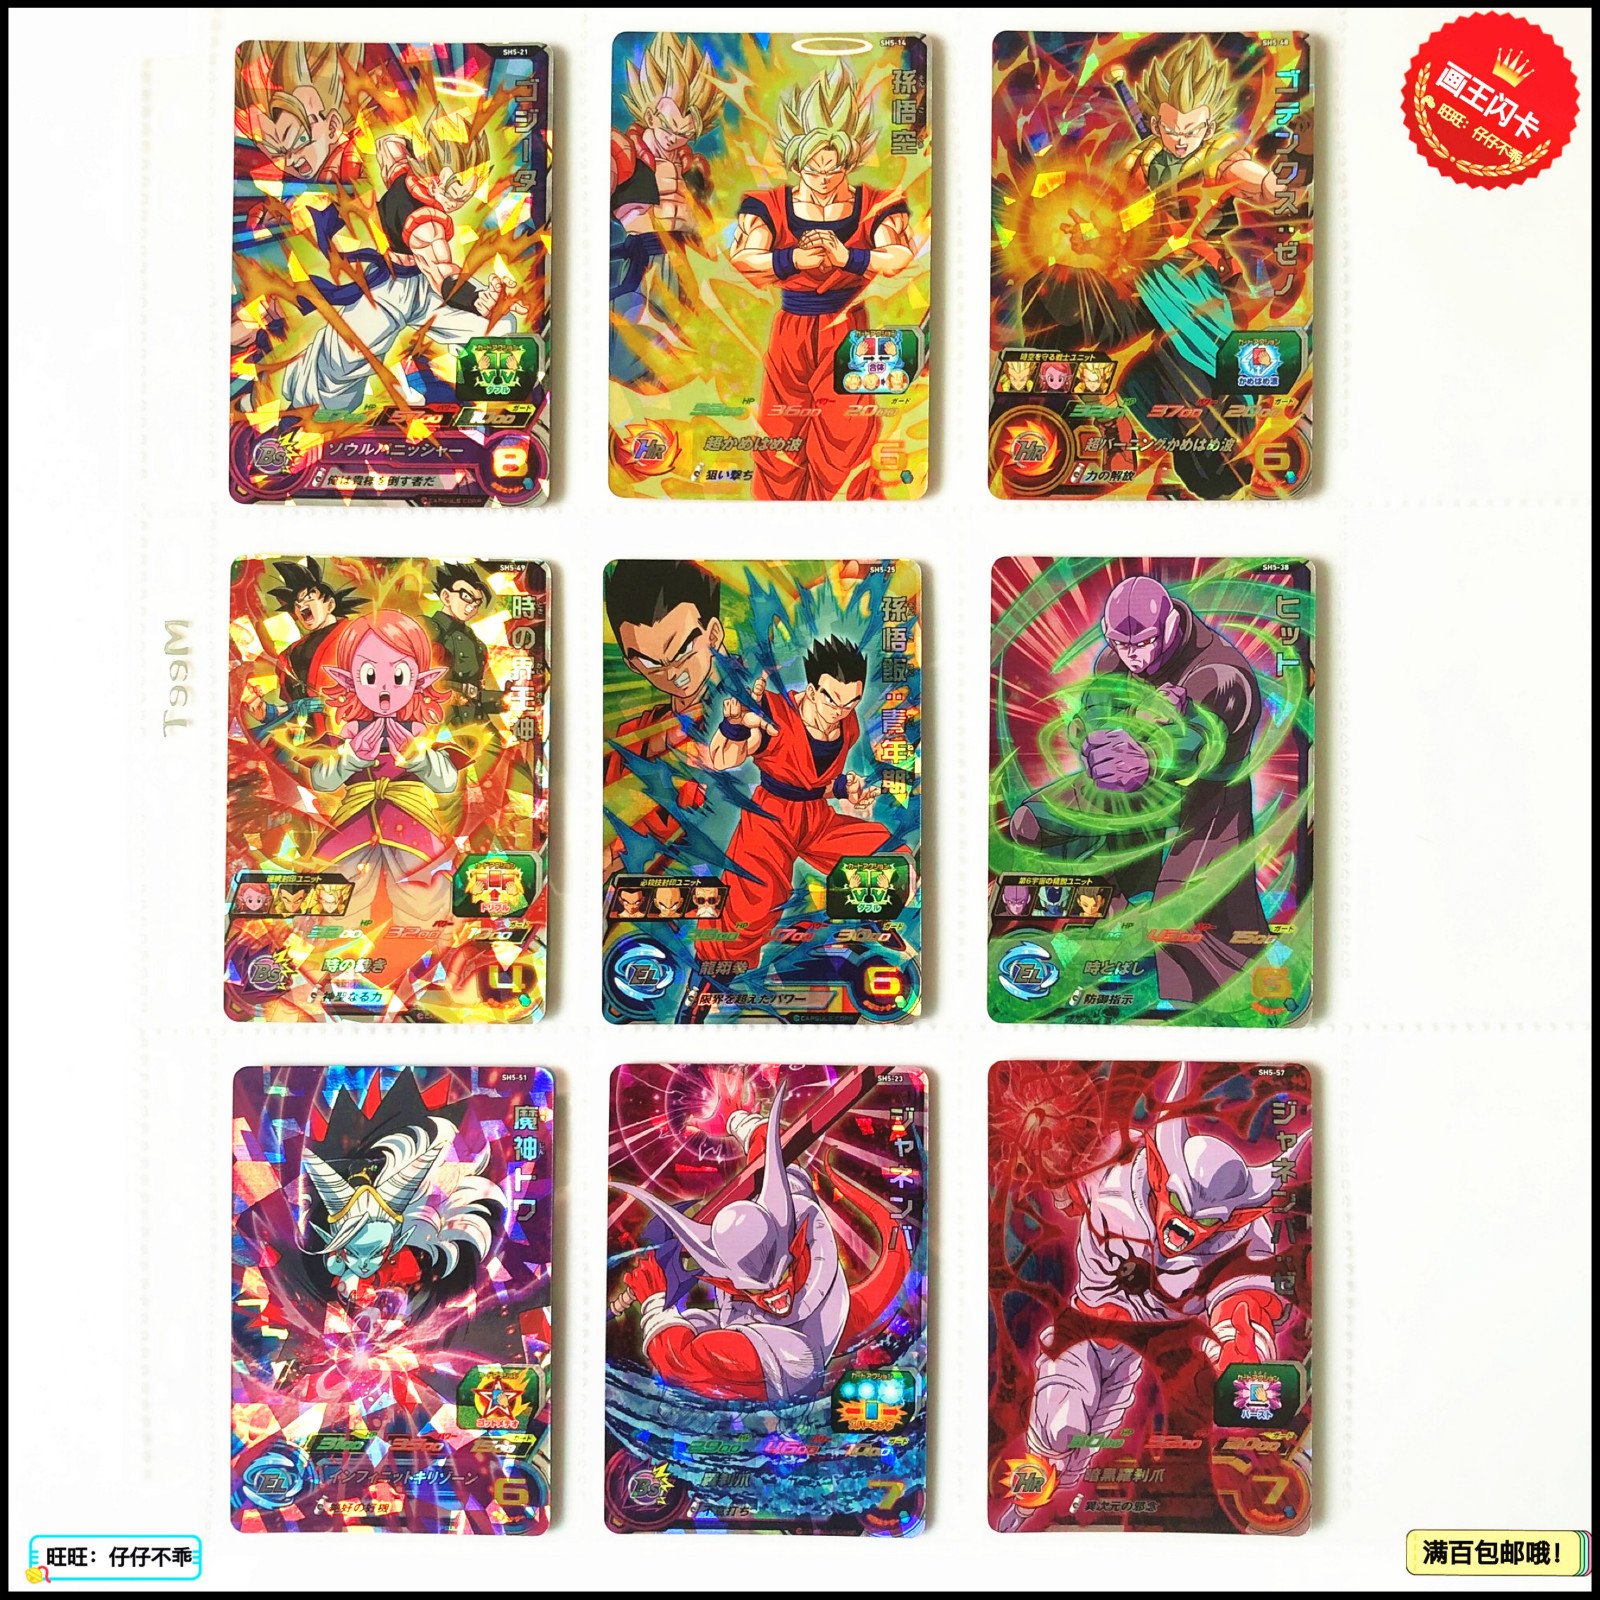 Japan Original Dragon Ball Hero Card SR Flash 3 Stars SH5 Goku Gogeta Hit Toys Hobbies Collectibles Game Collection Anime Cards